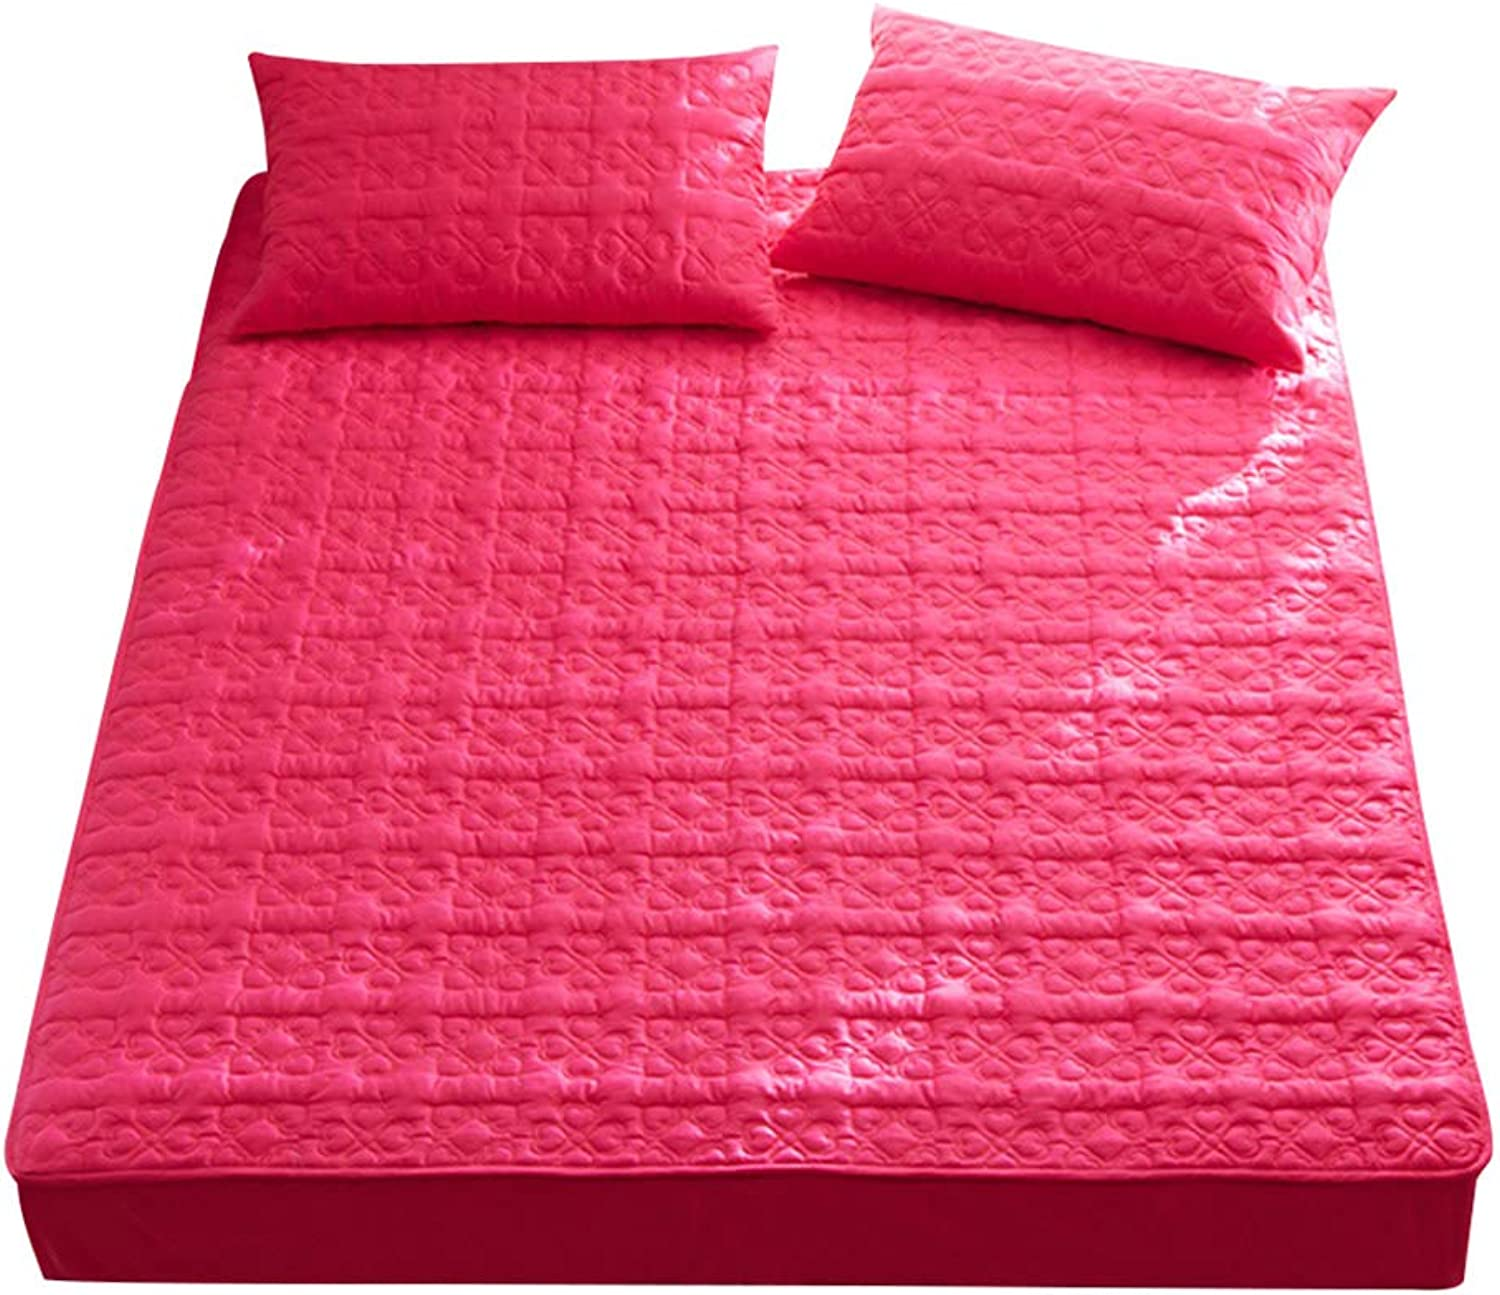 ZHAOHUI Mattress Predector Cotton Breathable Anti-mite Keep Warm Quilted Soft and Comfortable, 2 Packages are Available, 6 colors, 3 Sizes (color   Red-1pc, Size   150X200cm)